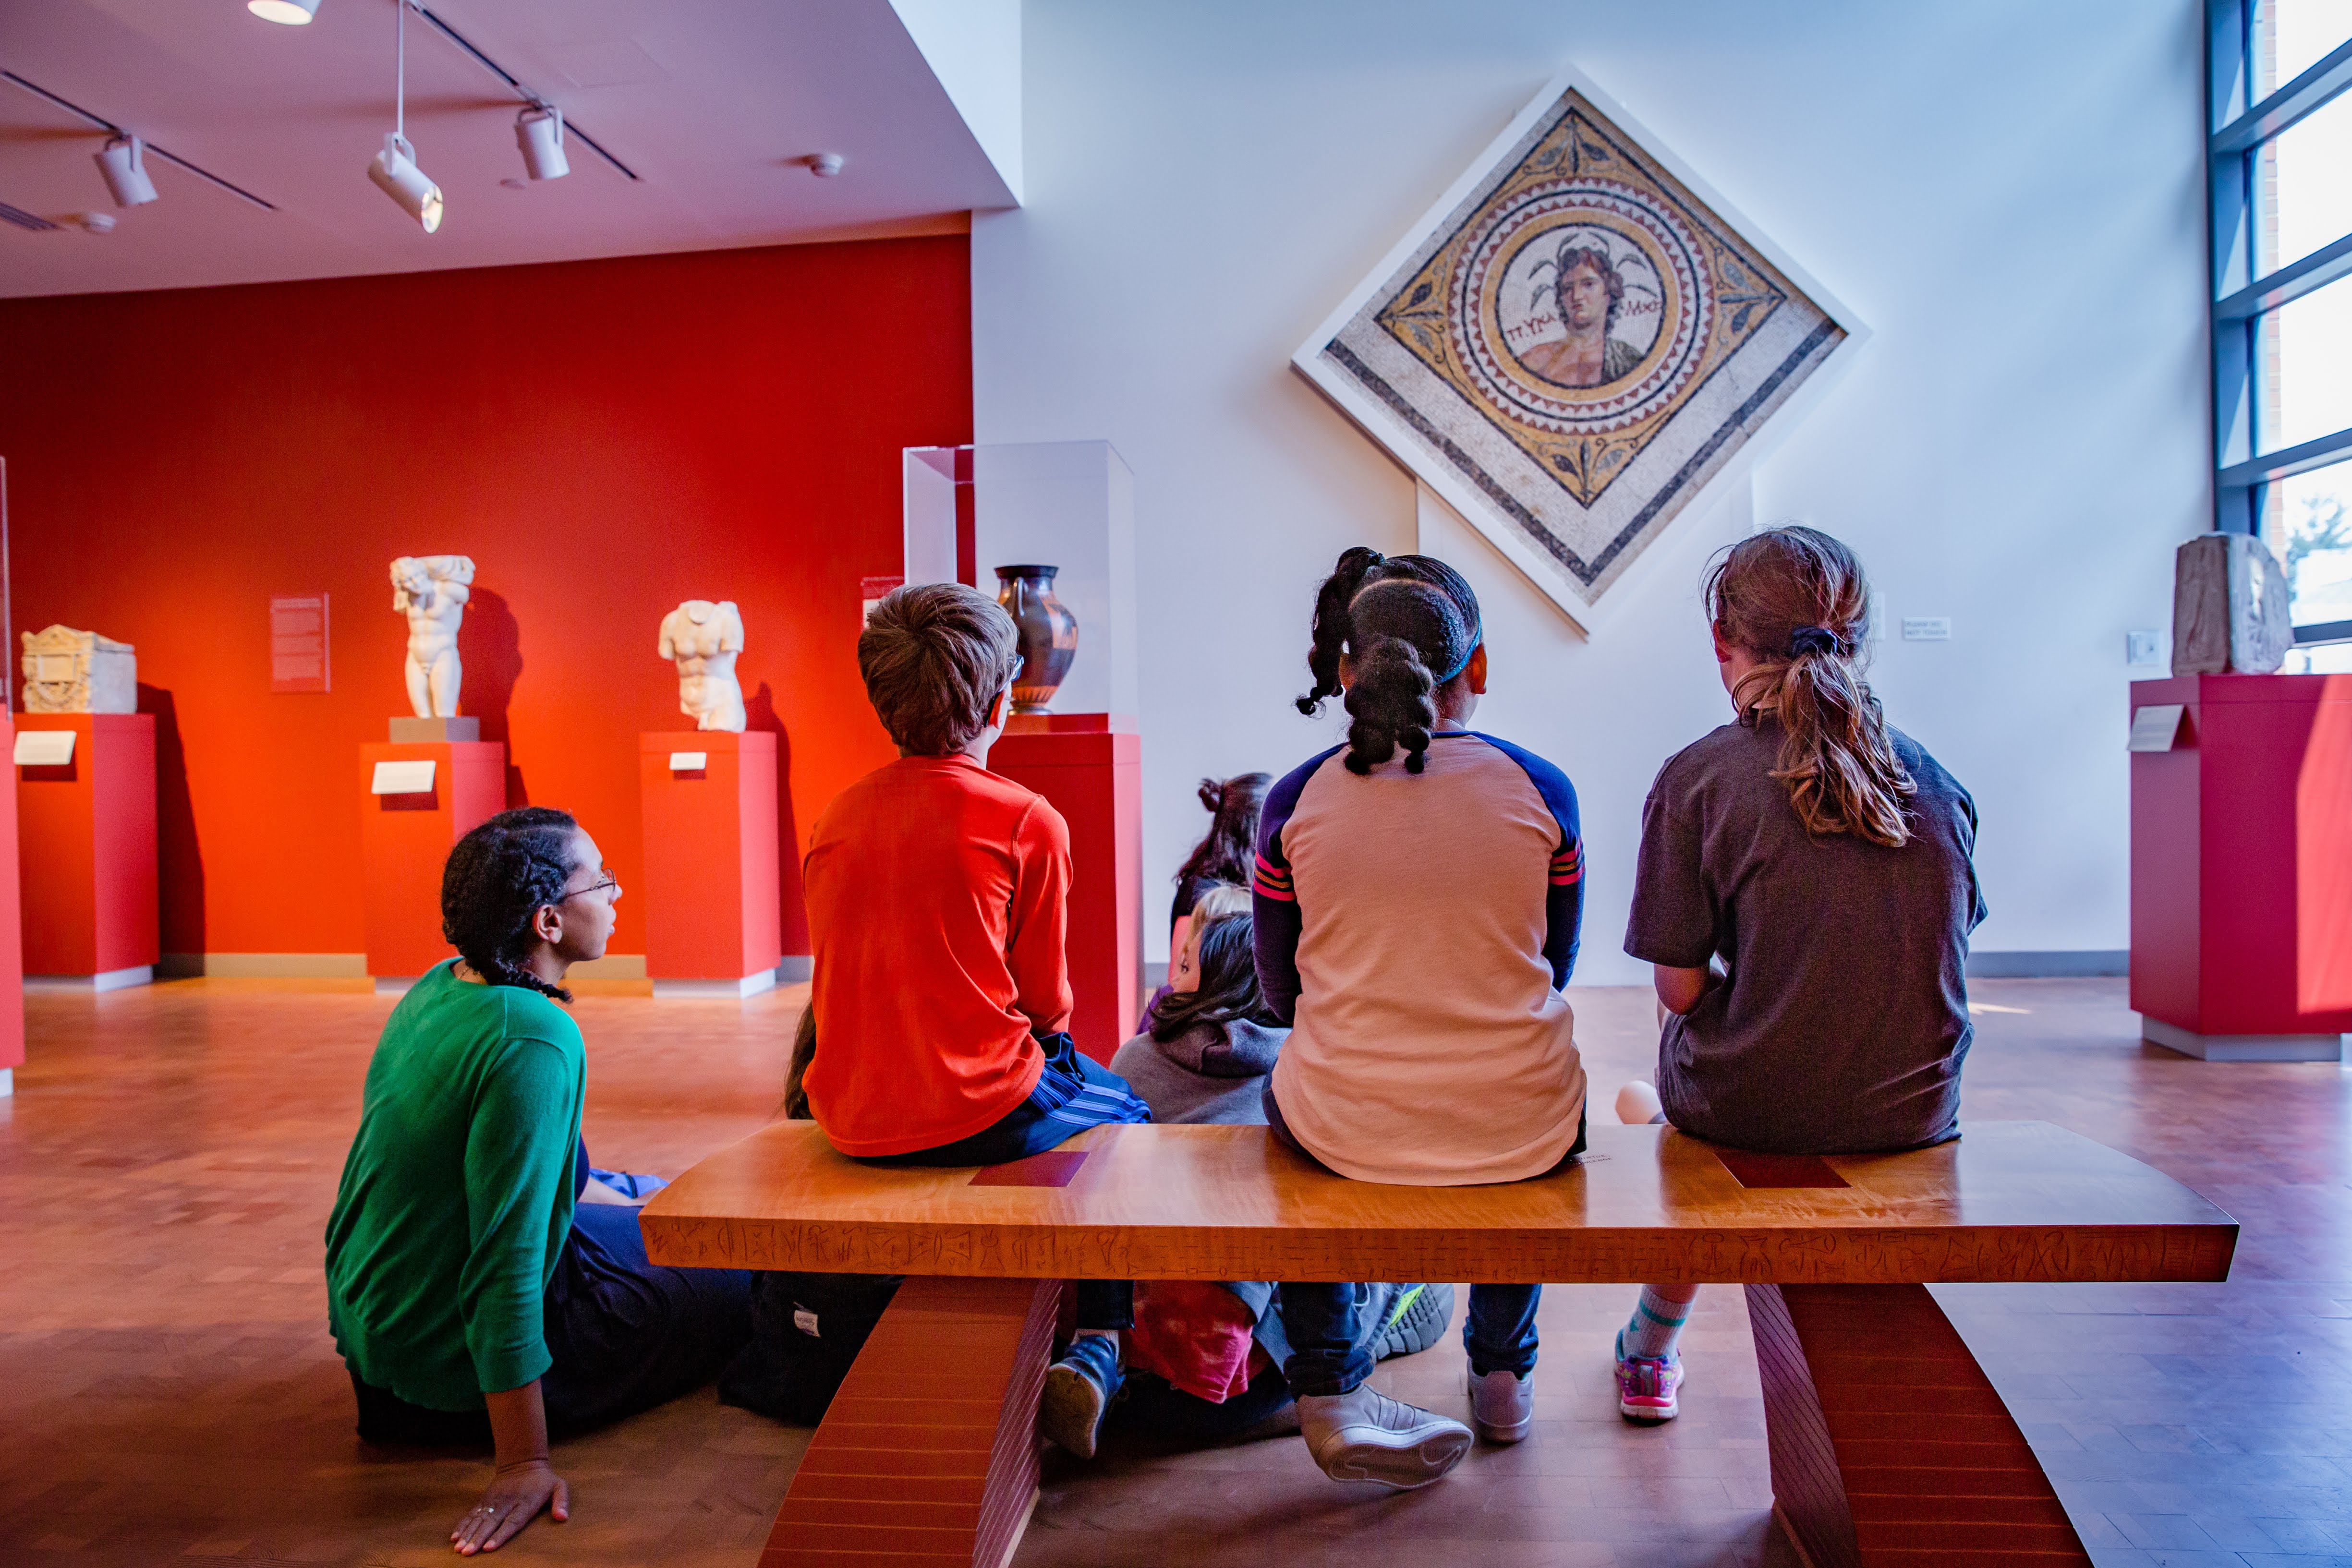 students viewing artwork at the museum